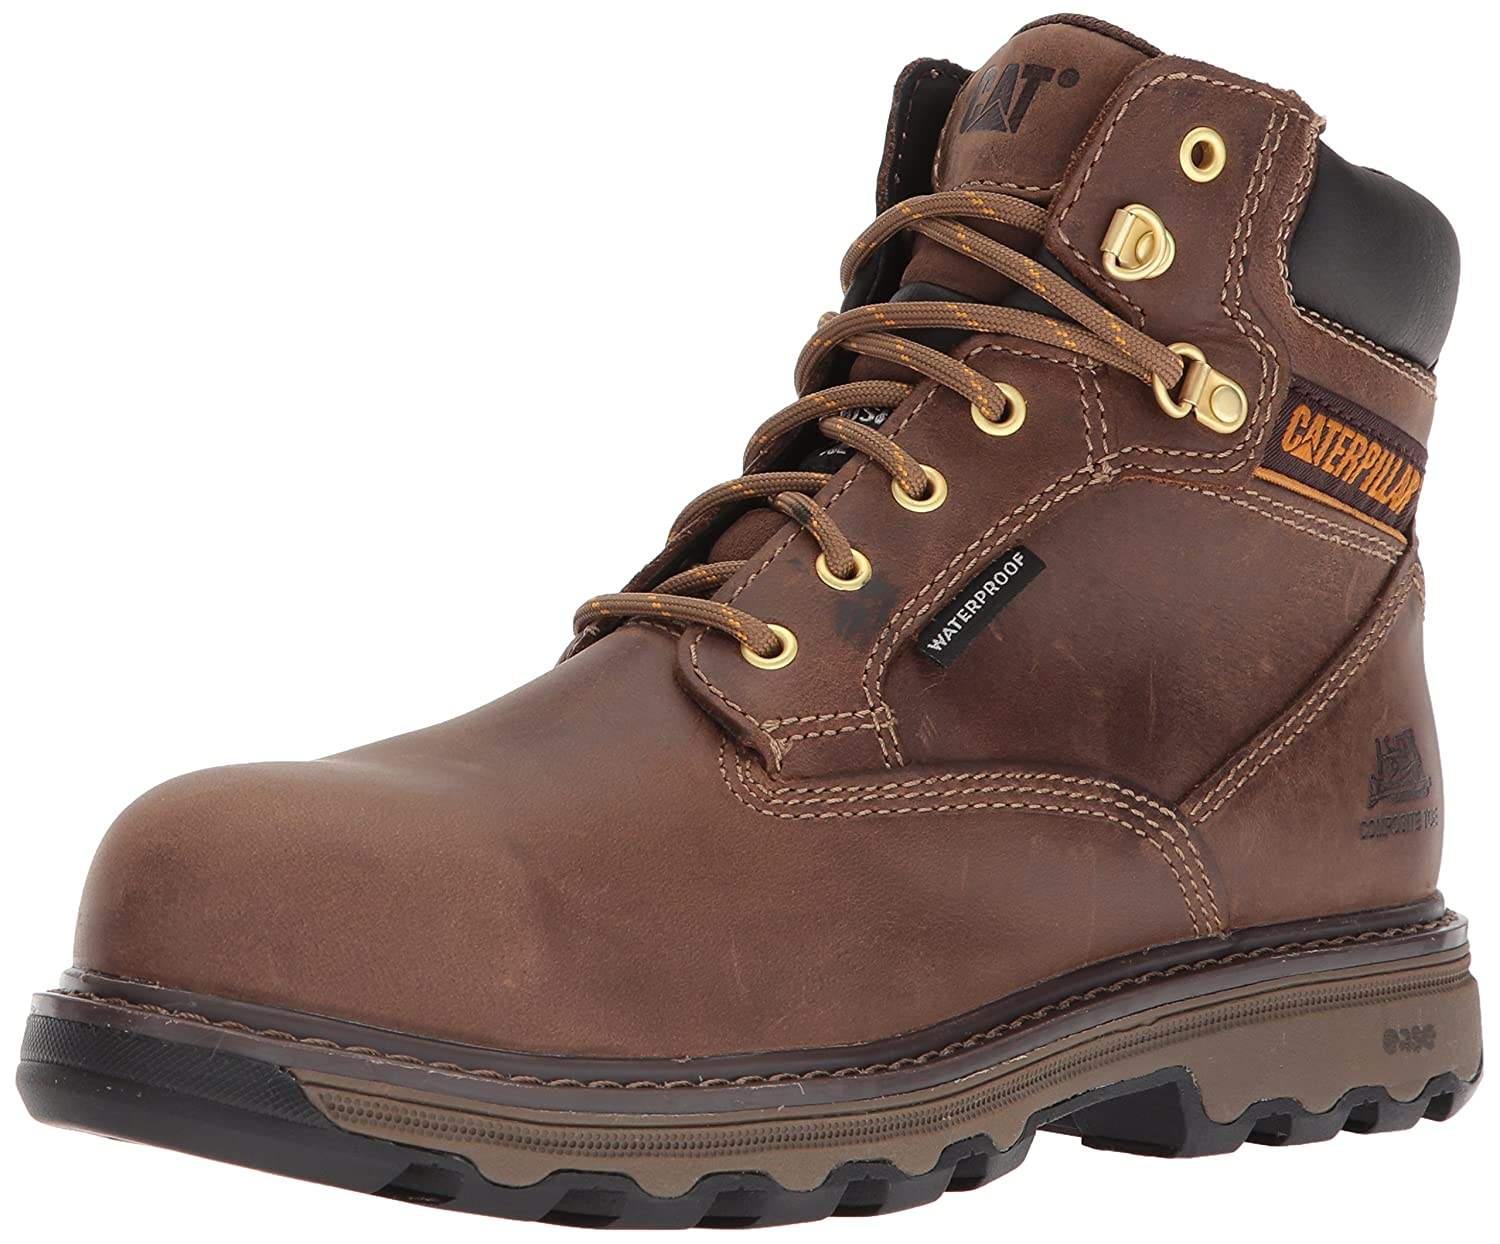 Caterpillar Women's Superstat Waterproof Nano Toe/Tater Industrial and Construction Shoe B01N5VDL2Z 10 M US|Tater